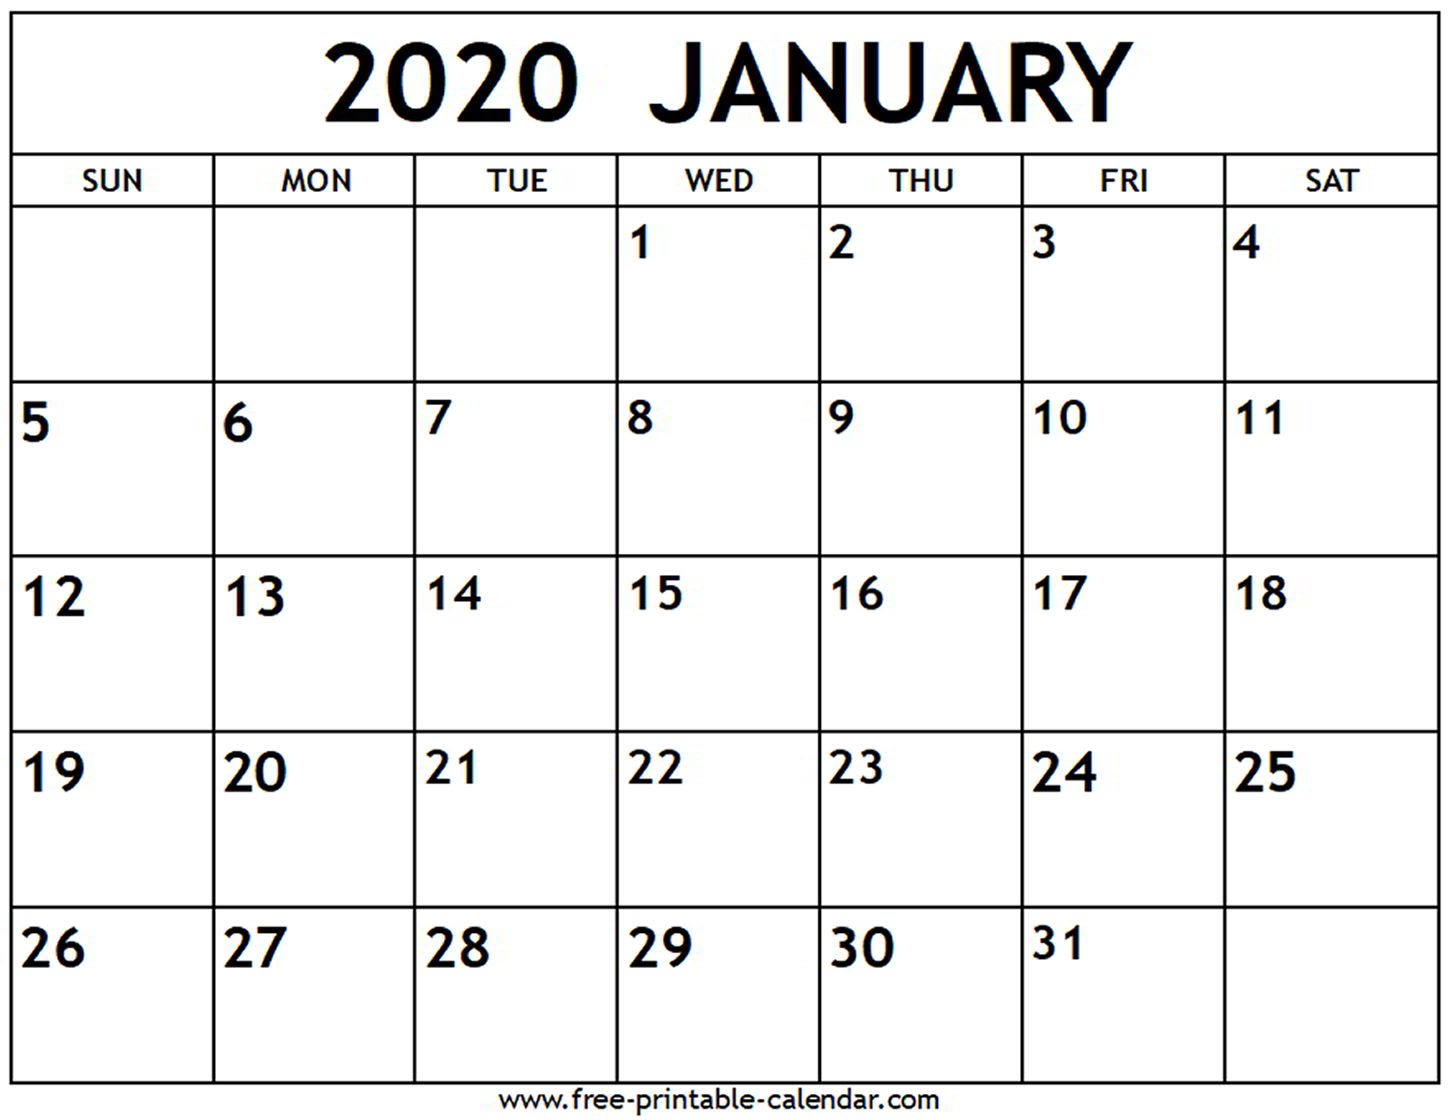 January 2020 Calendar - Free-Printable-Calendar in 2020 Calendars To Print Without Downloading